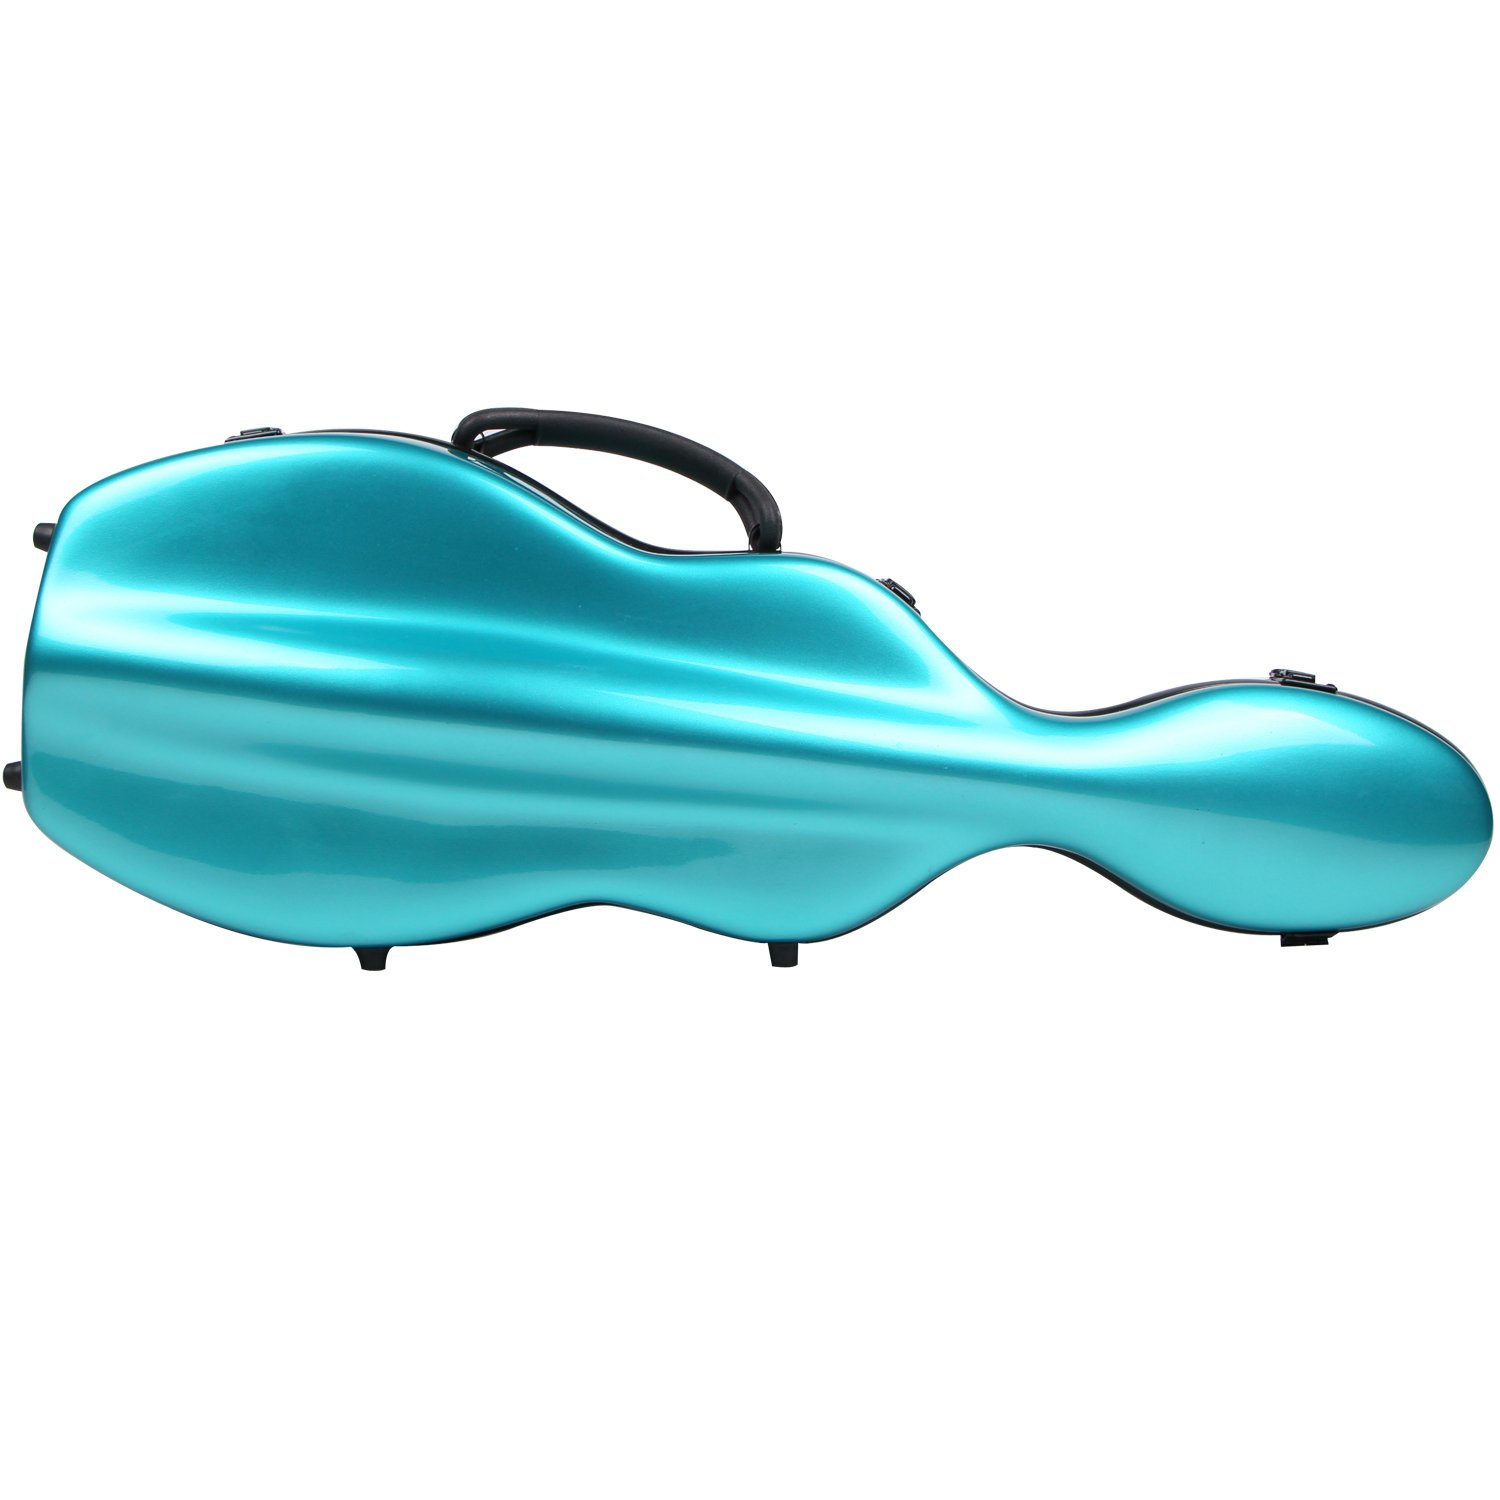 String House SG300PG Fiberglass Violin Case Cello Shaped Teal Green and black Full Size 4/4